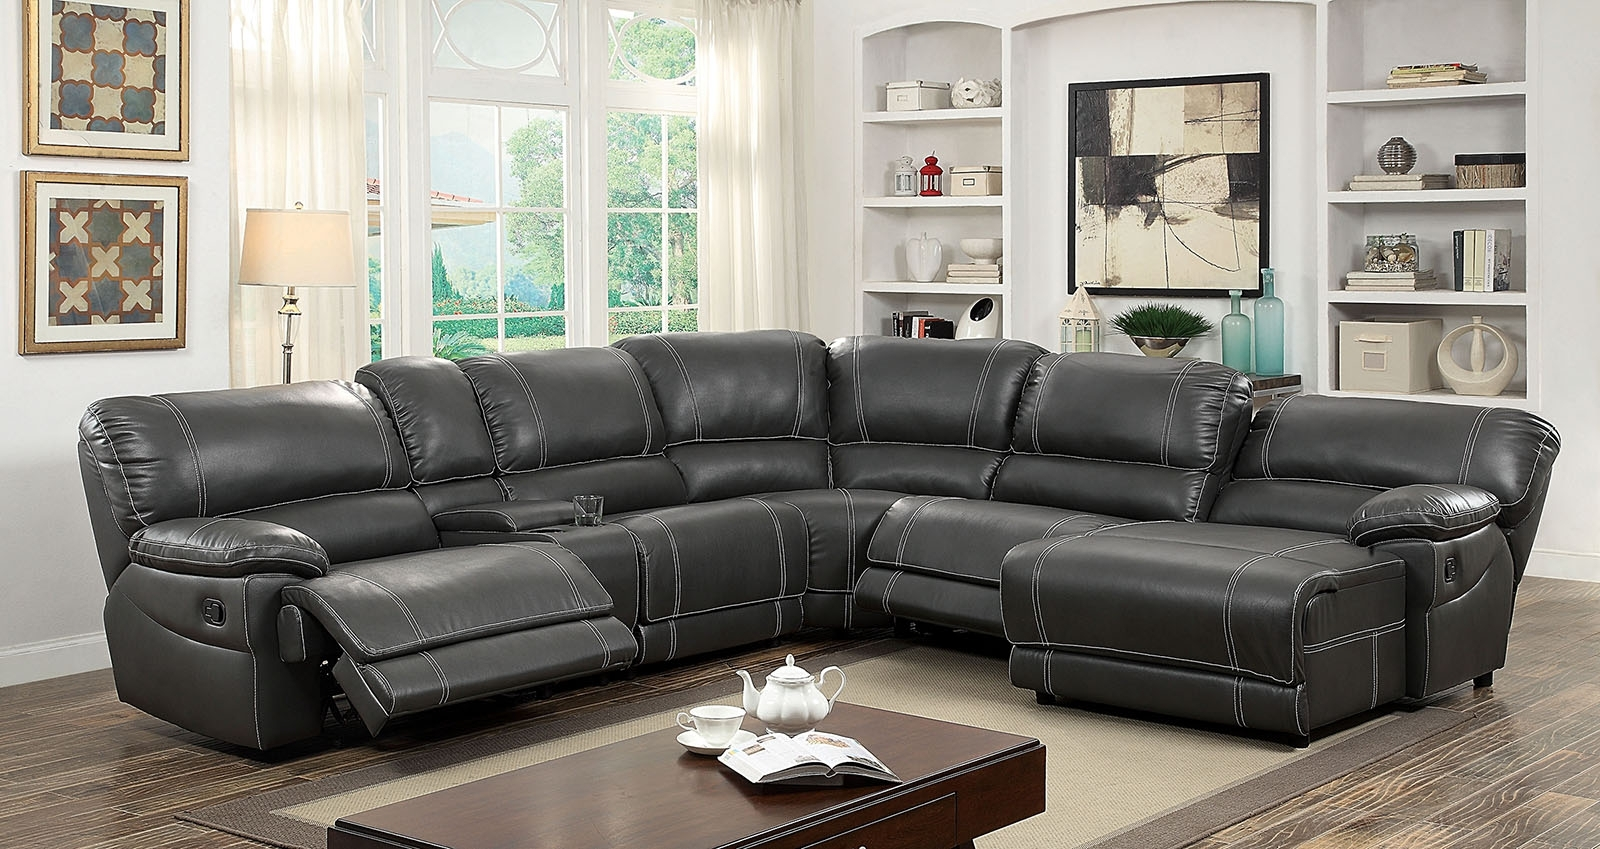 Little Rock Ar Sectional Sofas Inside Most Up To Date Best Modern Reclining Sectional Sofas Ideas – Liltigertoo (View 8 of 15)